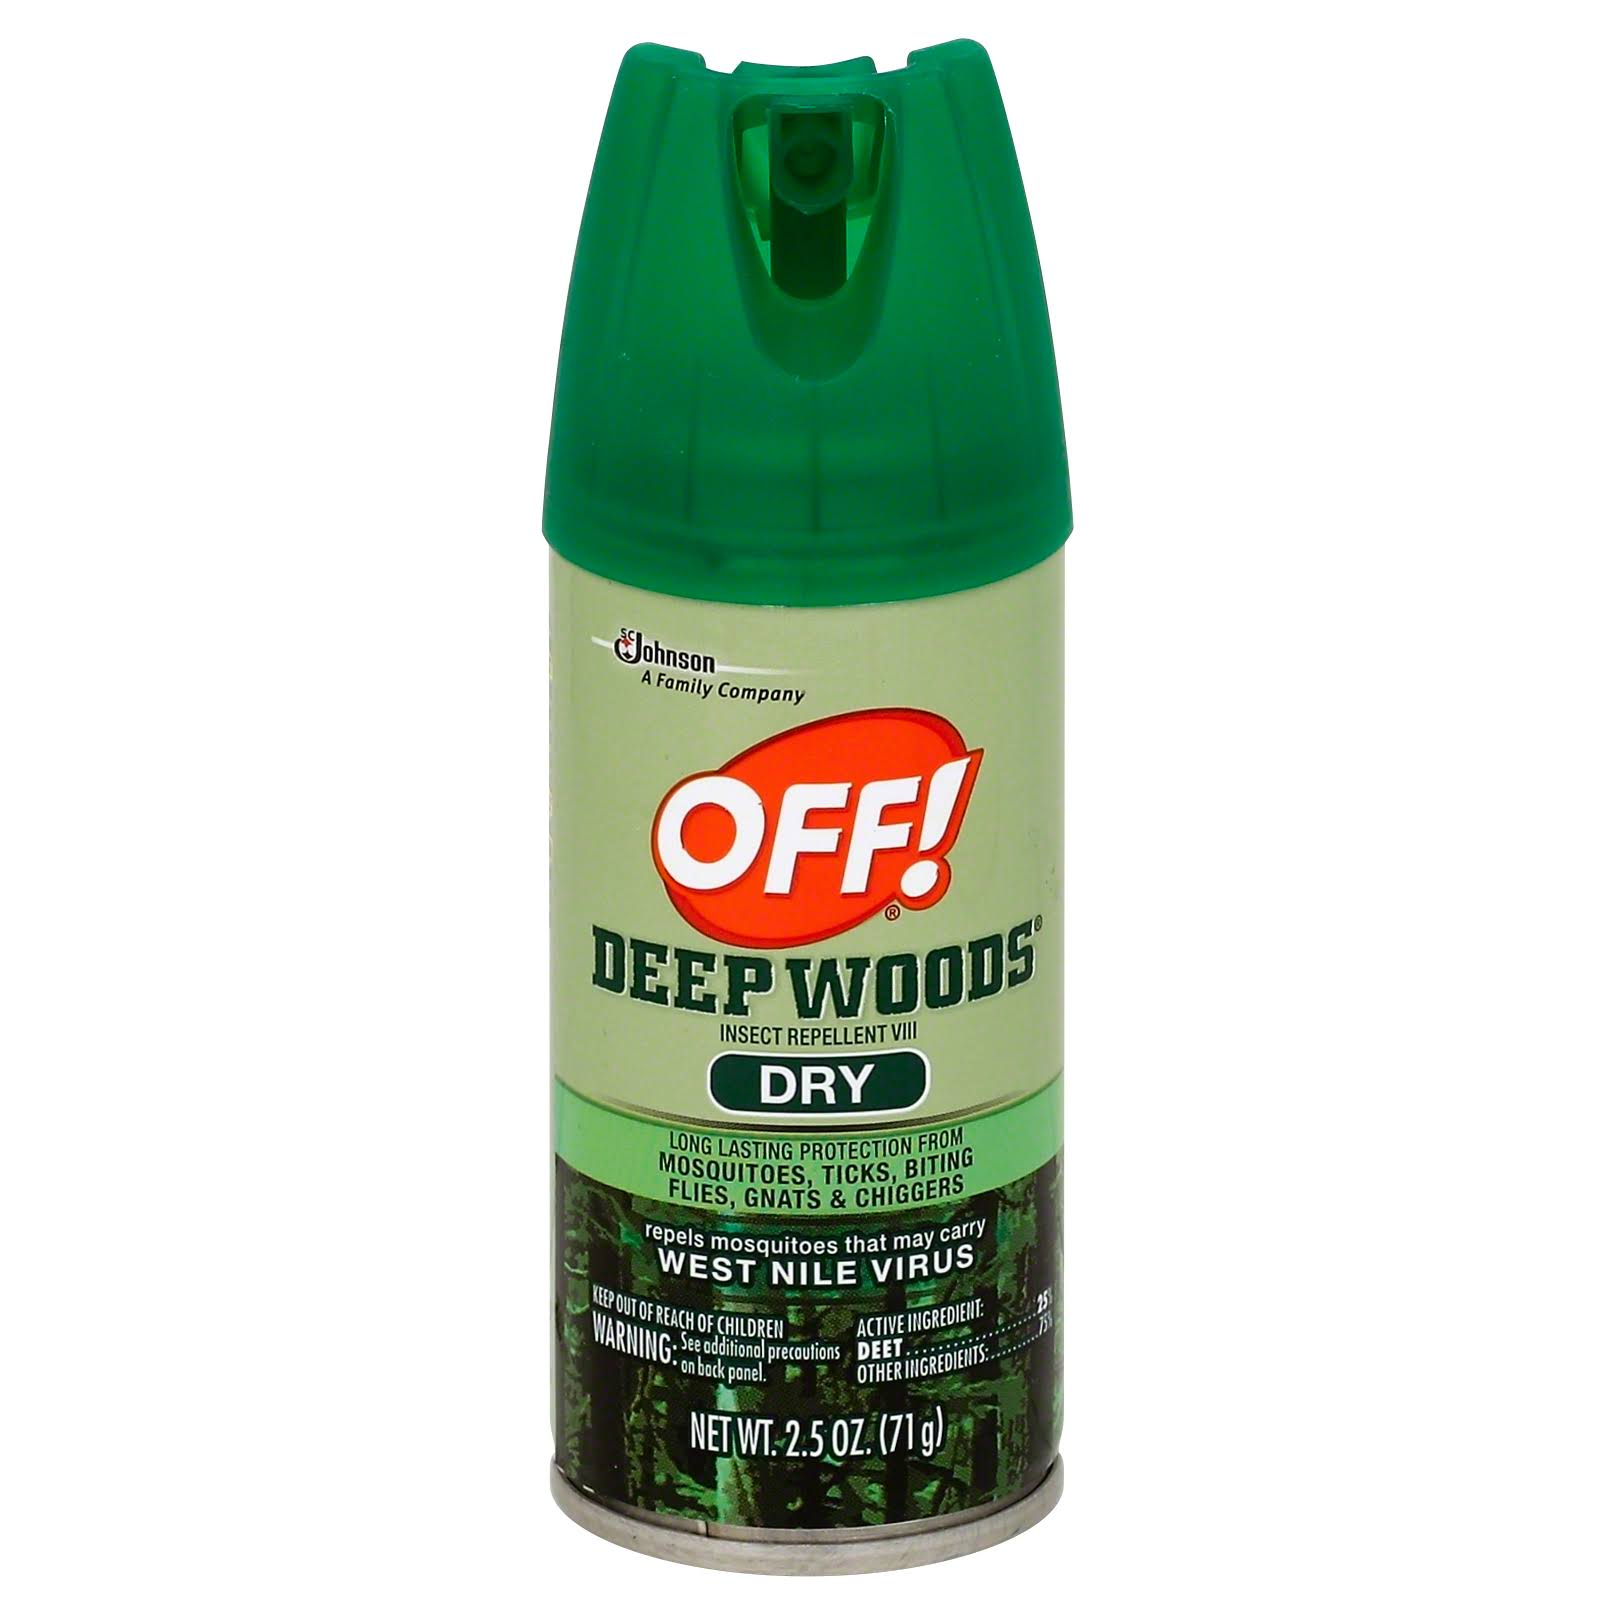 SC Johnson Off! Deep Woods Dry Insect Repellent - 2.5oz